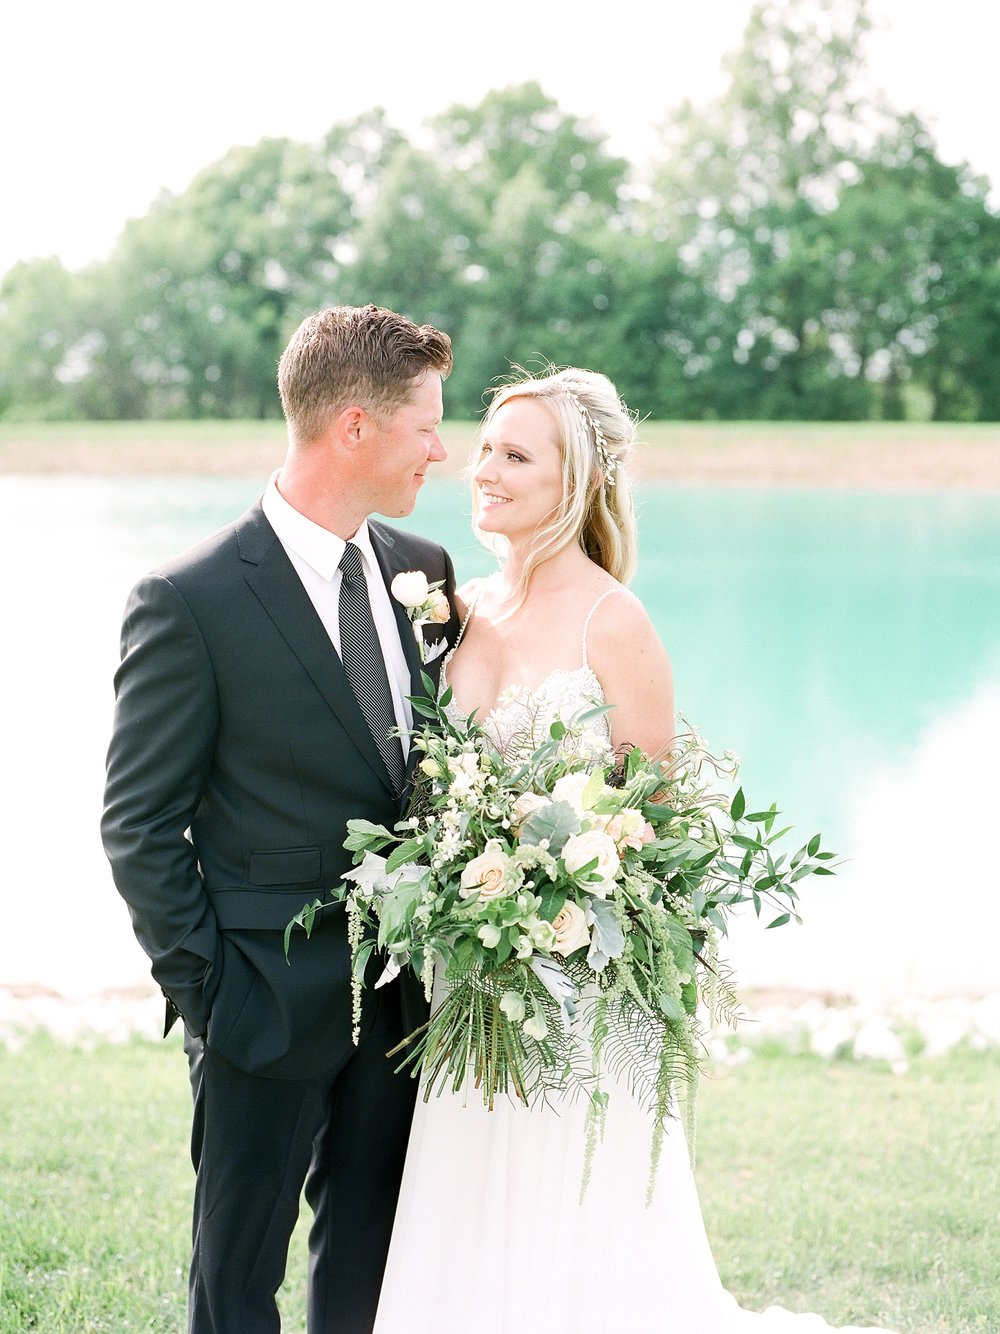 Textural Organic Wedding in All White Venue by Kelsi Kliethermes Wedding Photographer - Missouri, Midwest, and Destinations_0080.jpg